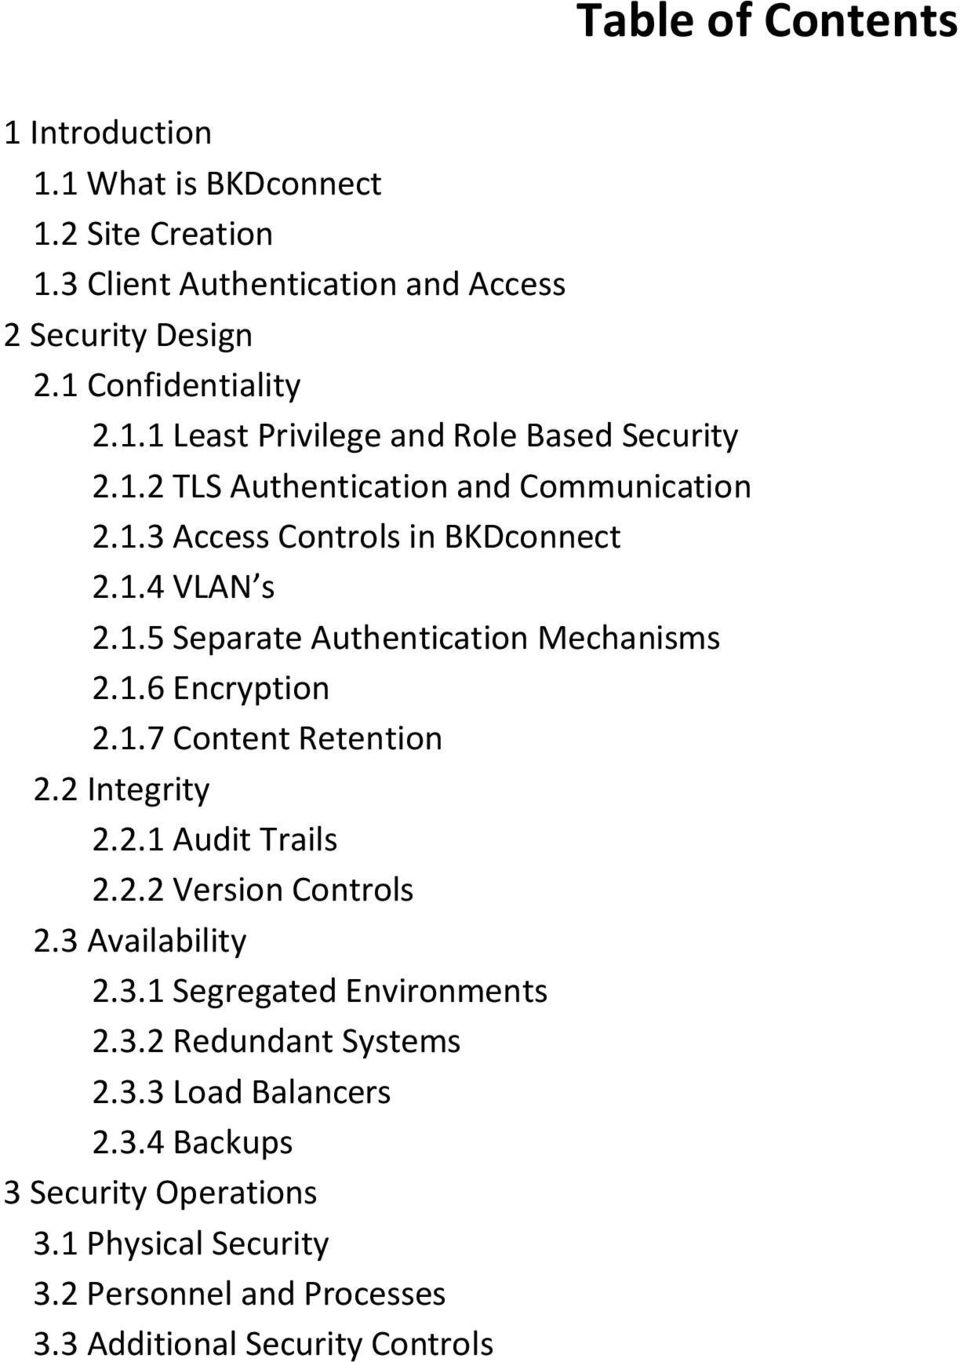 2 Integrity 2.2.1 Audit Trails 2.2.2 Version Controls 2.3 Availability 2.3.1 Segregated Environments 2.3.2 Redundant Systems 2.3.3 Load Balancers 2.3.4 Backups 3 Security Operations 3.